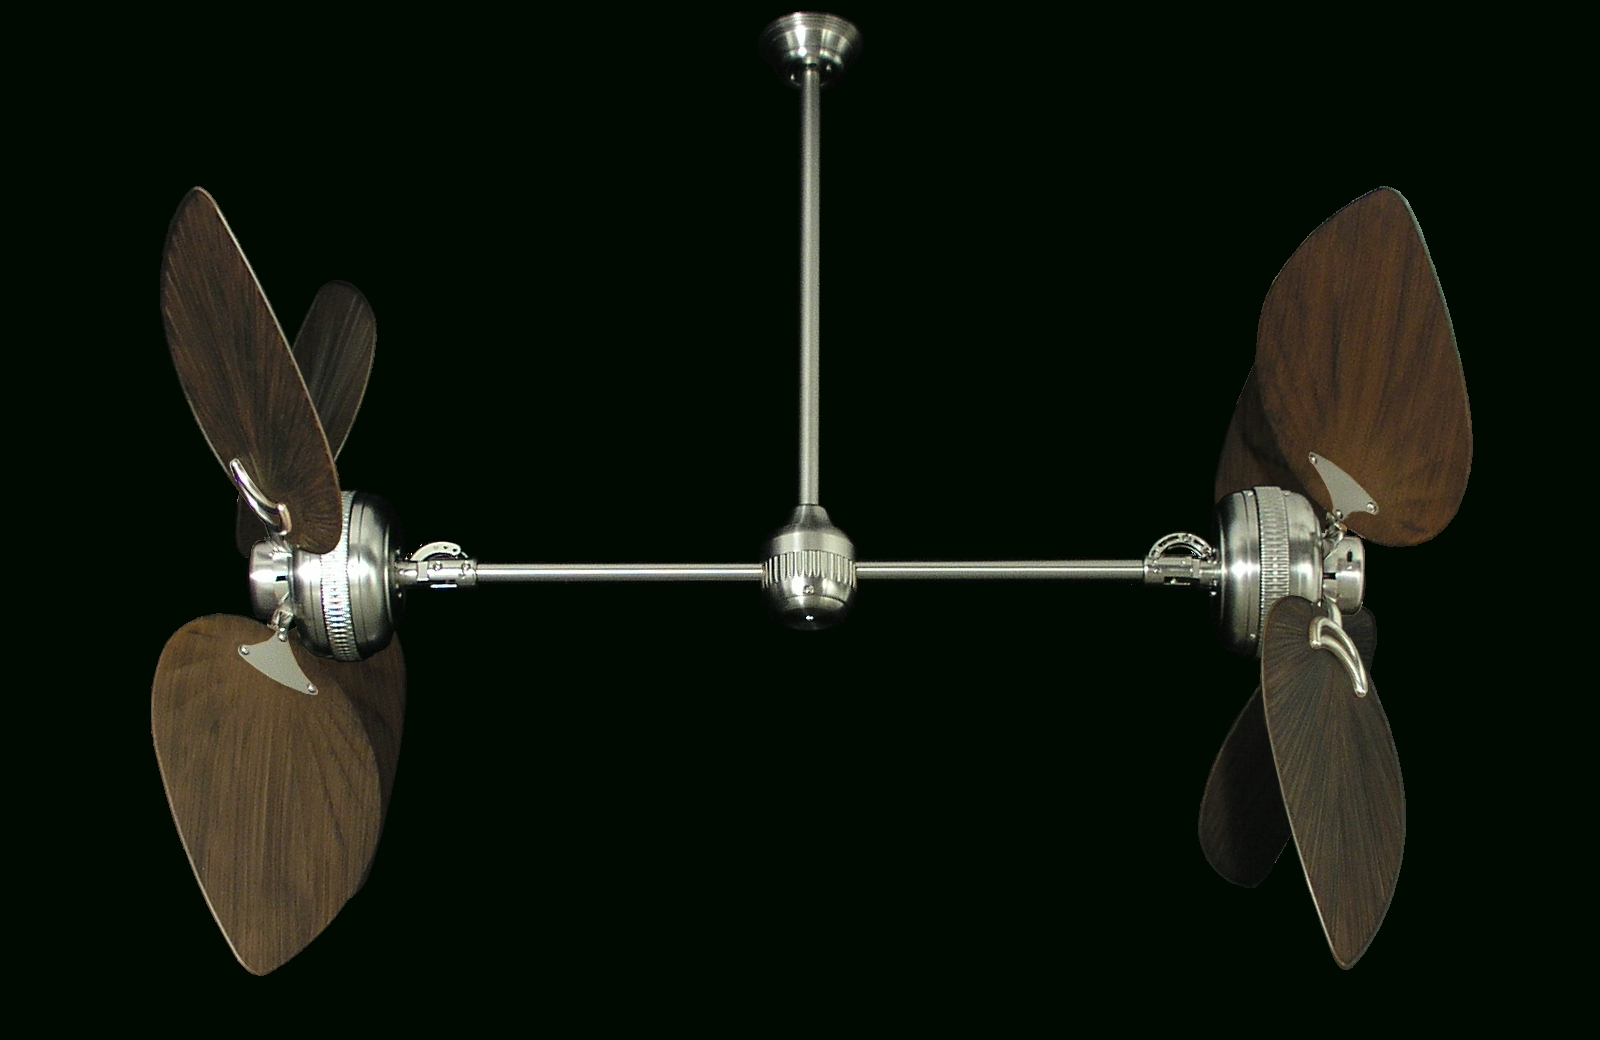 Well Known Ceiling: Astounding Dual Outdoor Ceiling Fan White Dual Fans Ceiling With Regard To Tropical Outdoor Ceiling Fans With Lights (View 15 of 20)